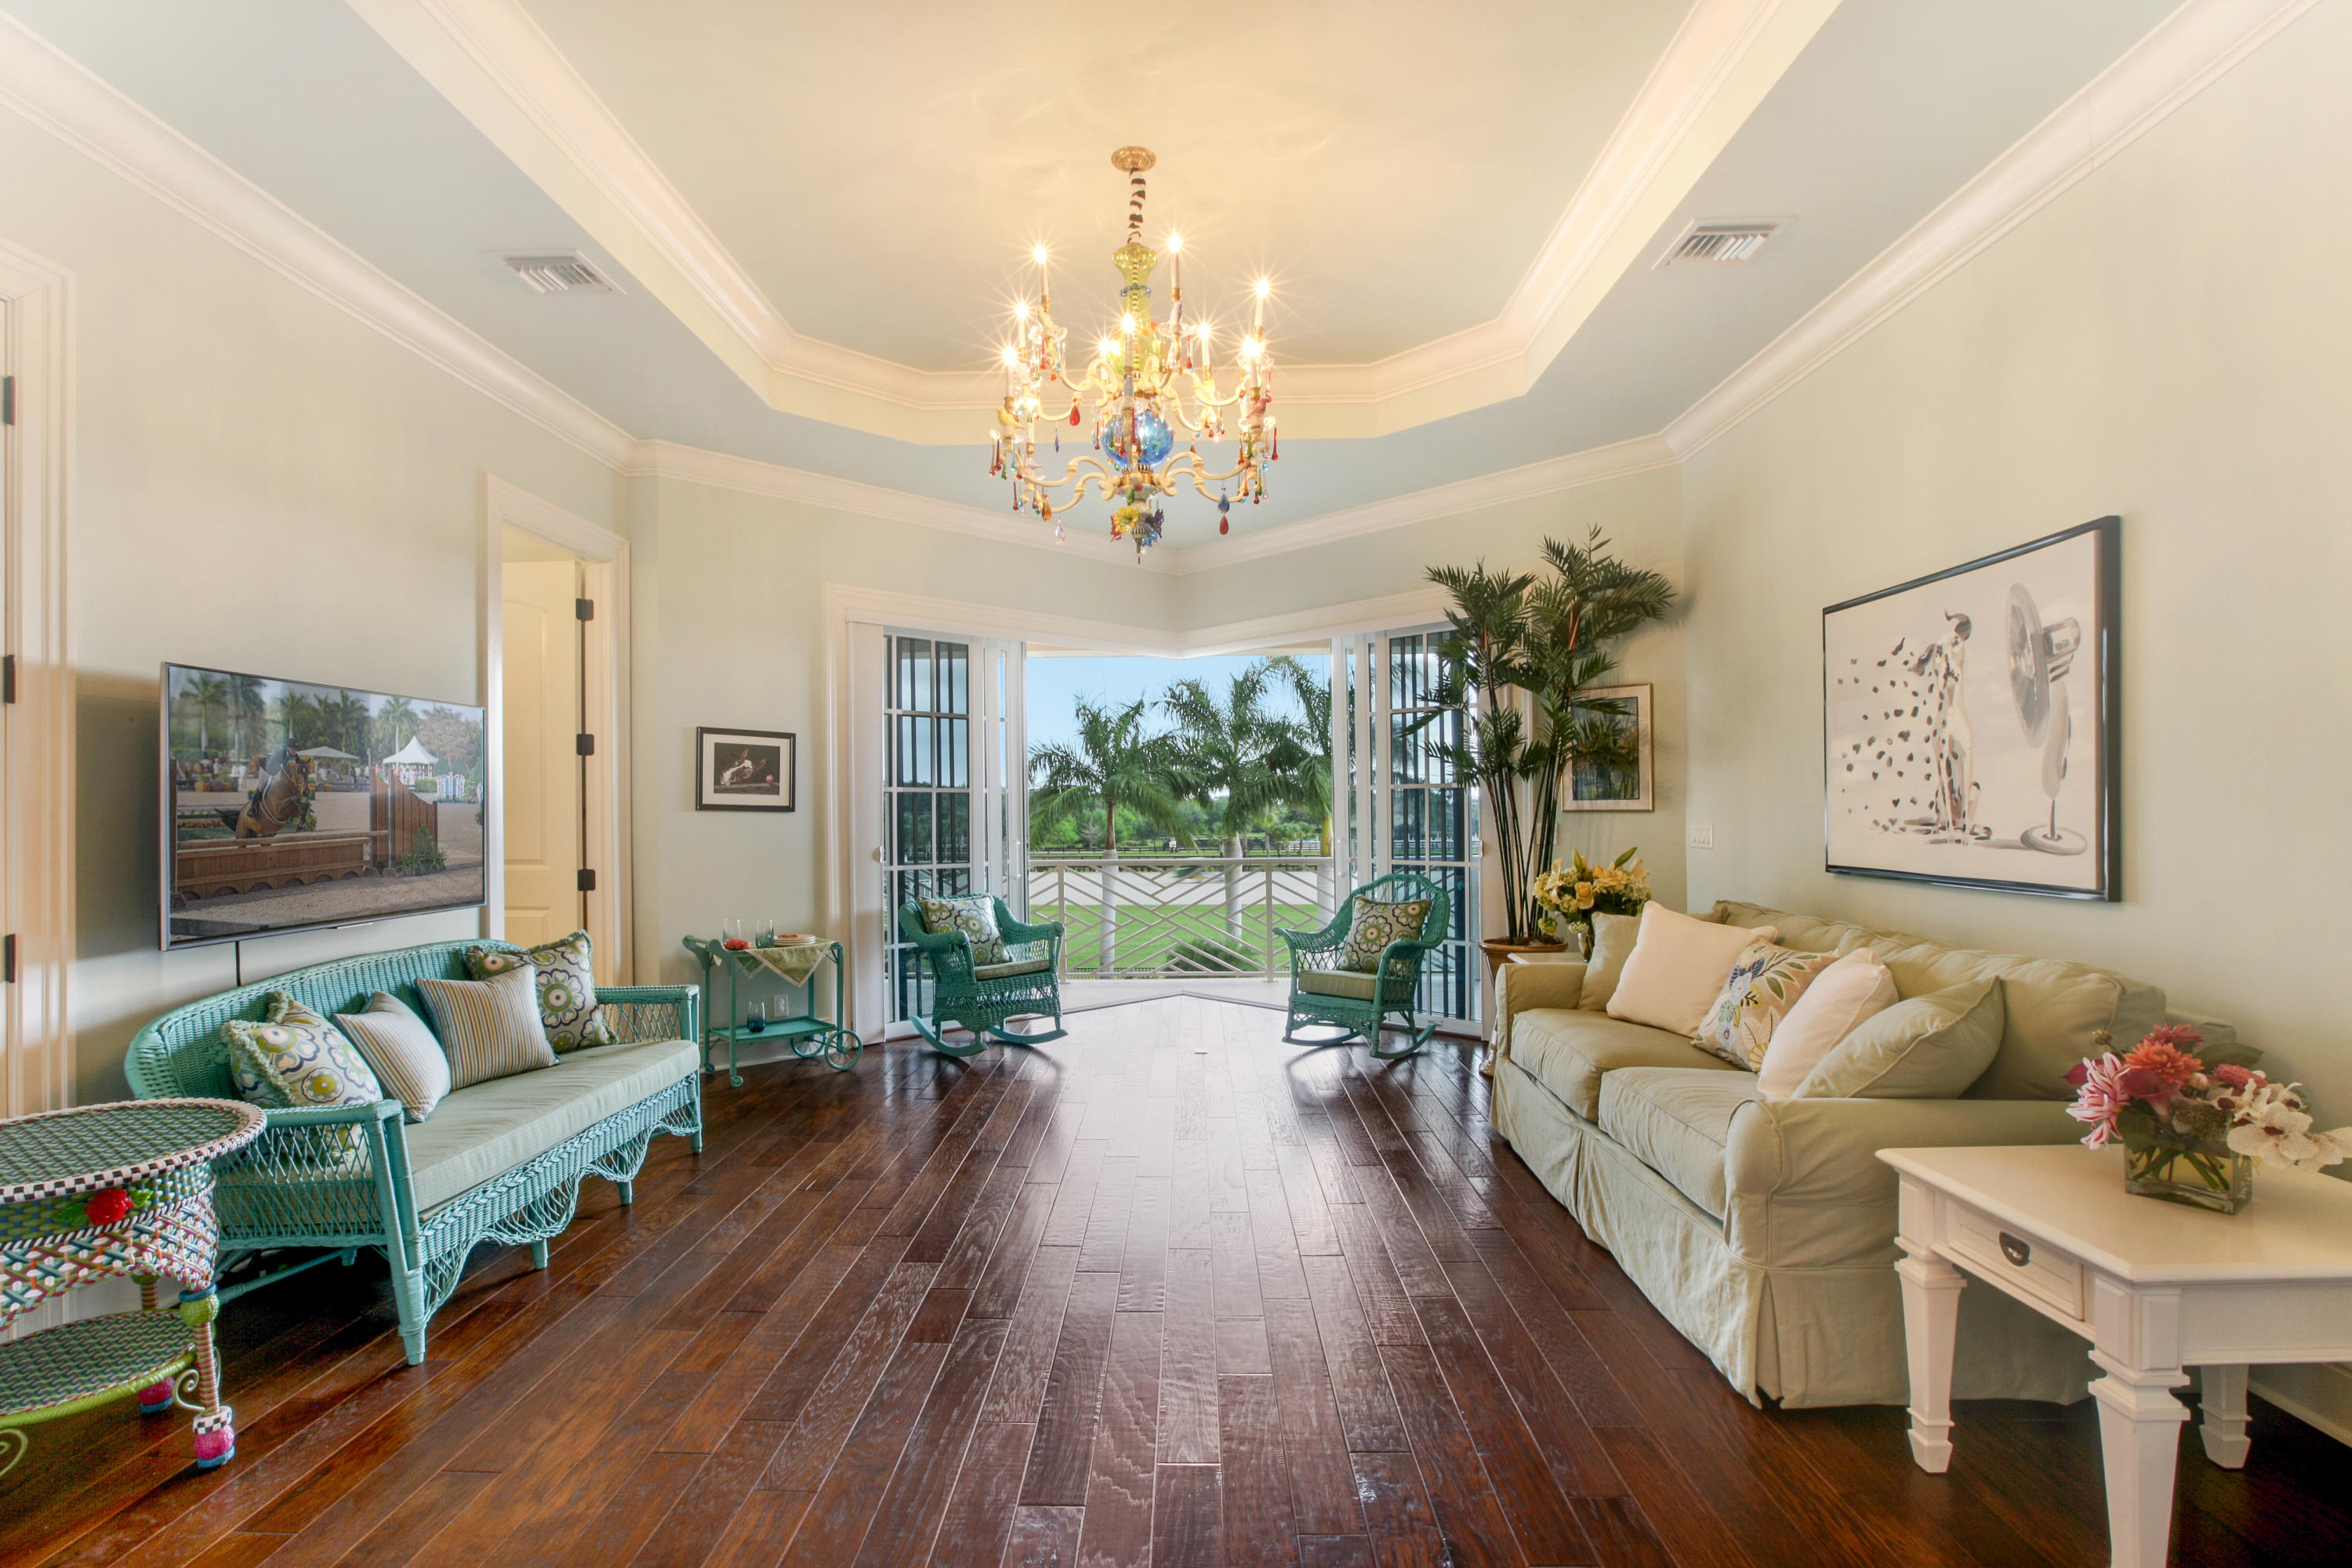 15321 Natures Point Lane, Wellington, Florida 33414, 7 Bedrooms Bedrooms, ,5.2 BathroomsBathrooms,Single Family,For Sale,Palm Beach Point,Natures Point,RX-10482022